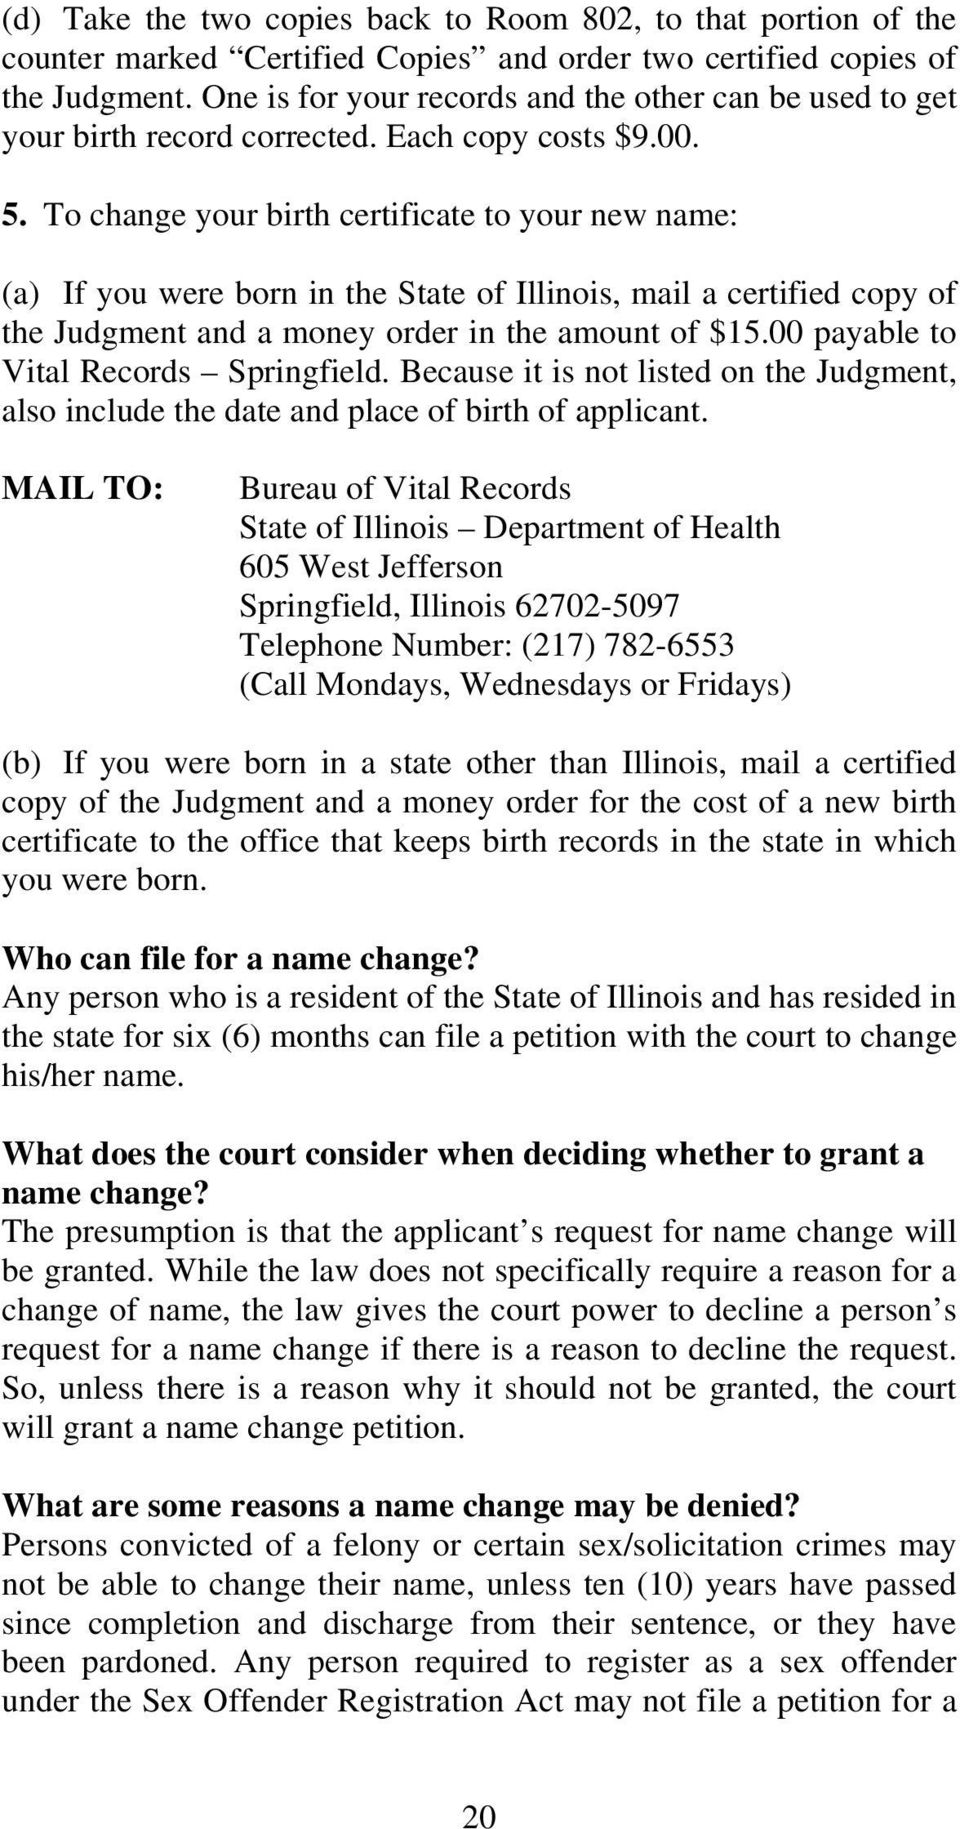 To change your birth certificate to your new name: (a) If you were born in the State of Illinois, mail a certified copy of the Judgment and a money order in the amount of $15.